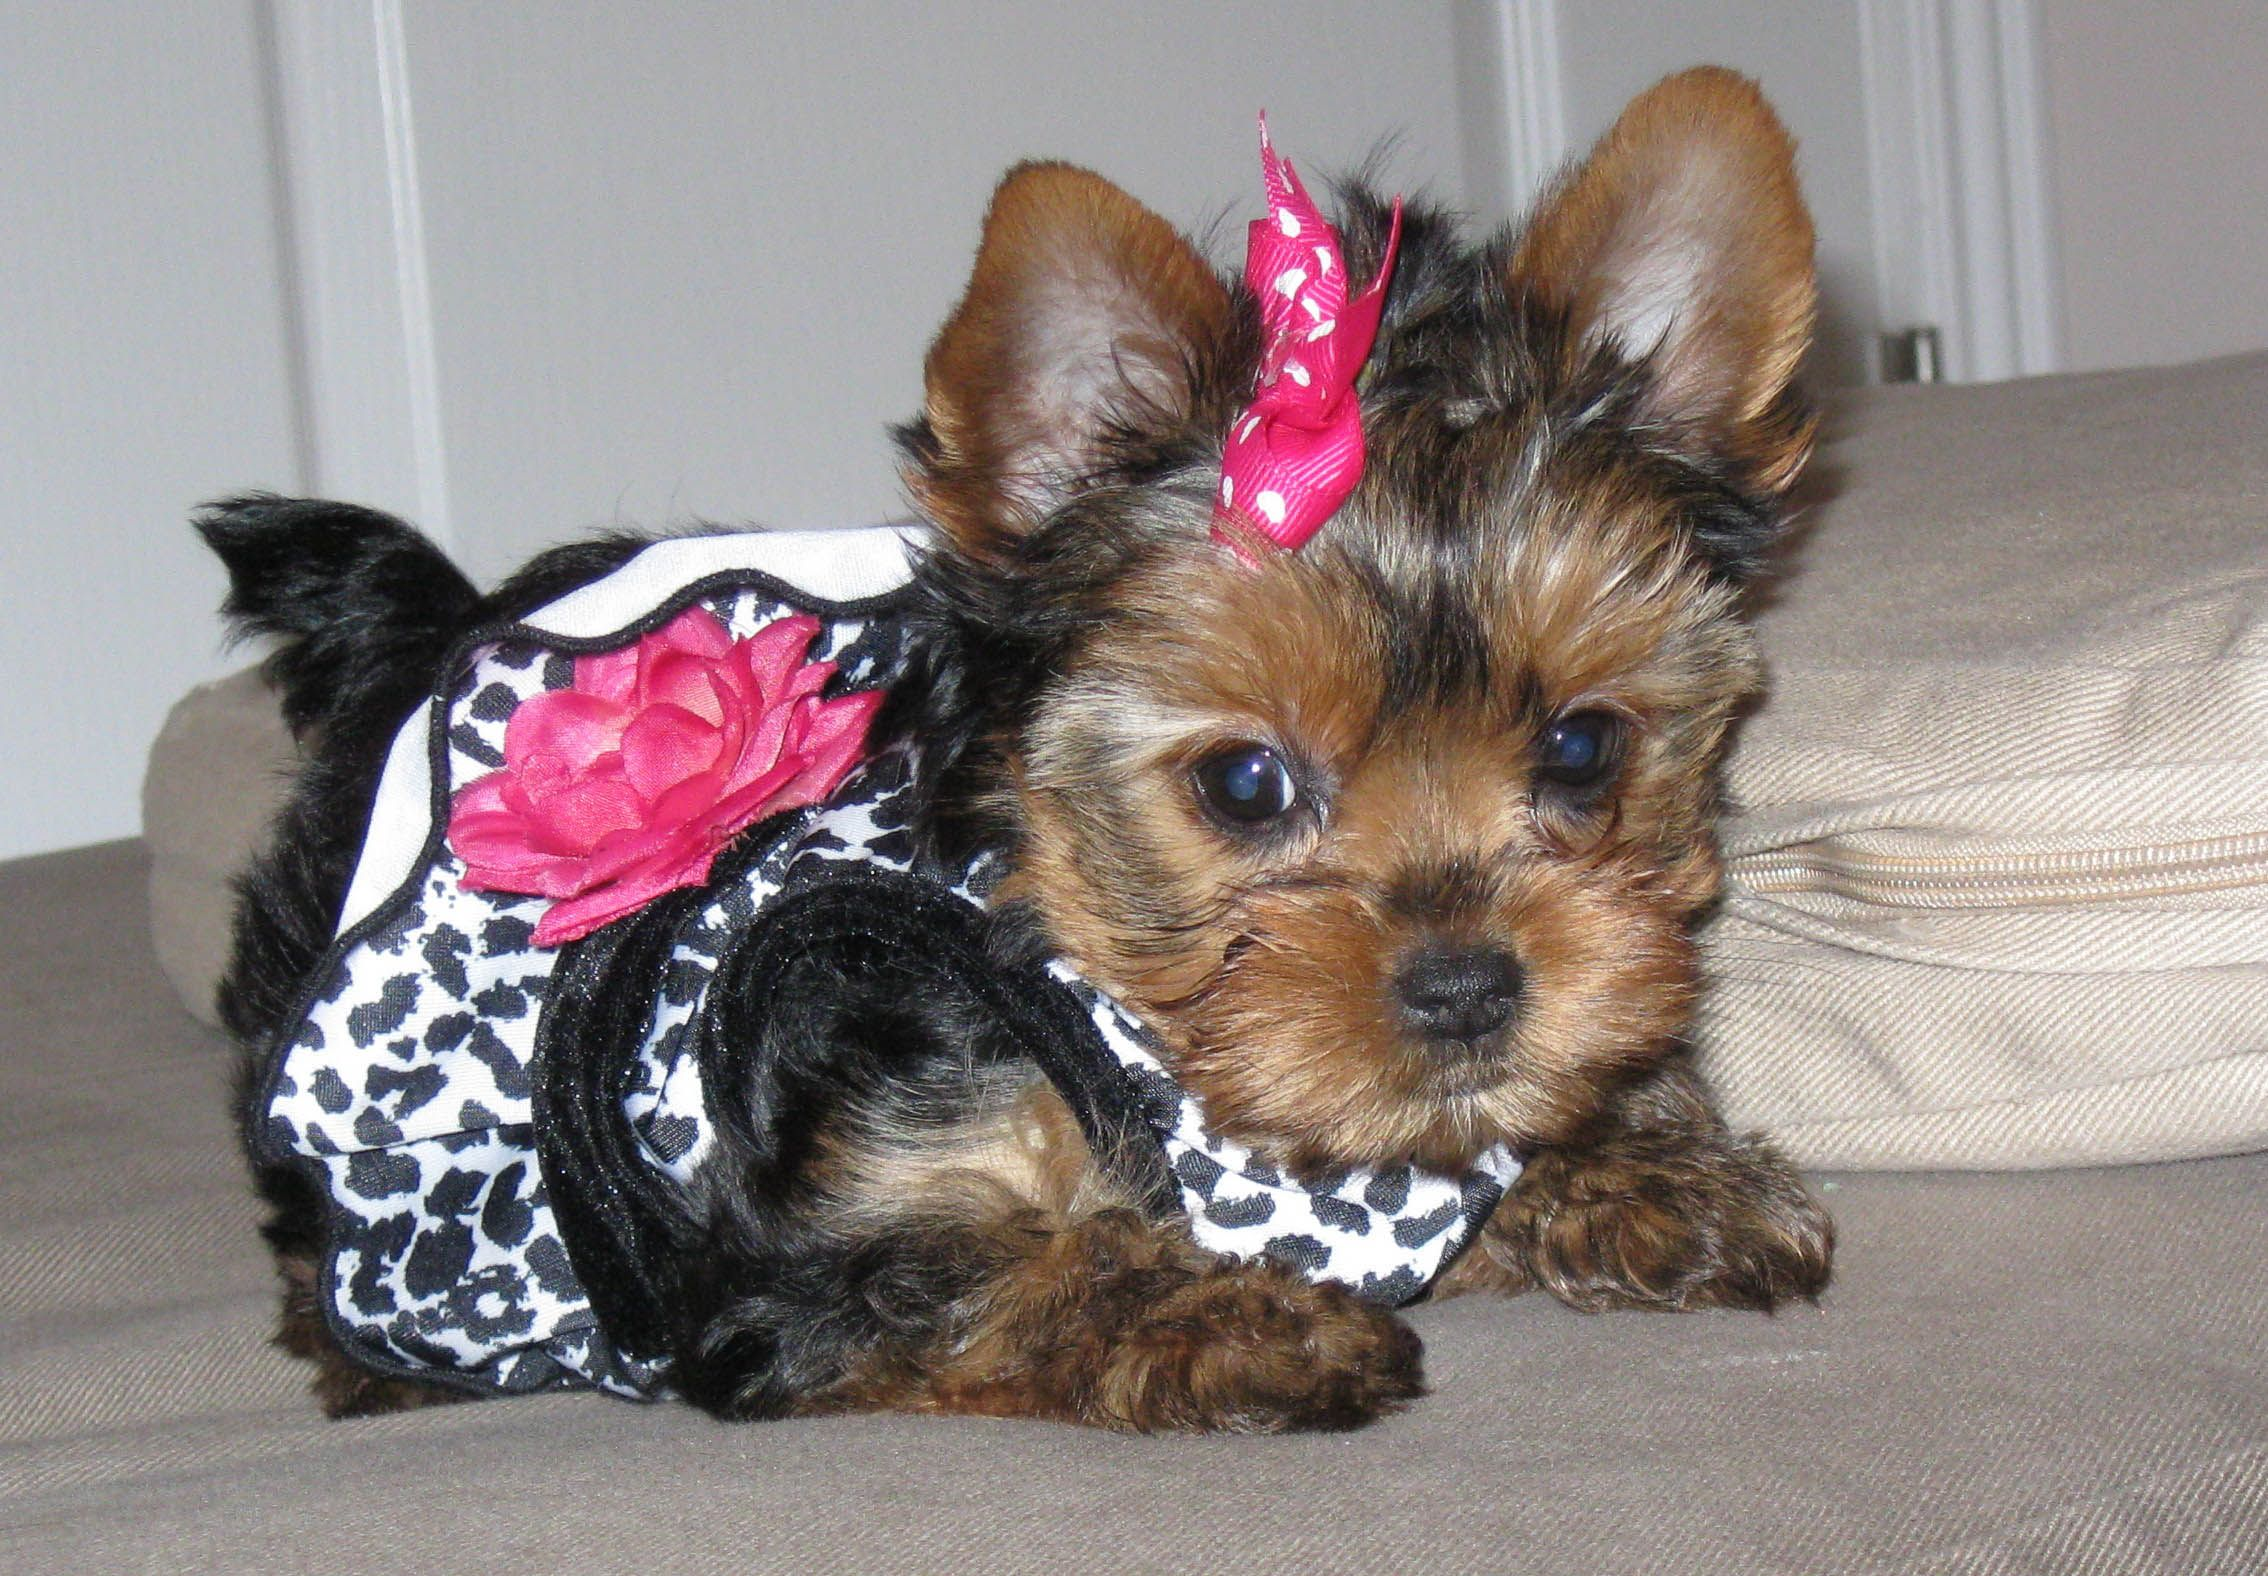 Yorkie Haircuts Pictures Coolest Yorkshire Terrier Haircuts Yorkie Puppy Teacup Yorkie Puppy Yorkshire Terrier Puppies